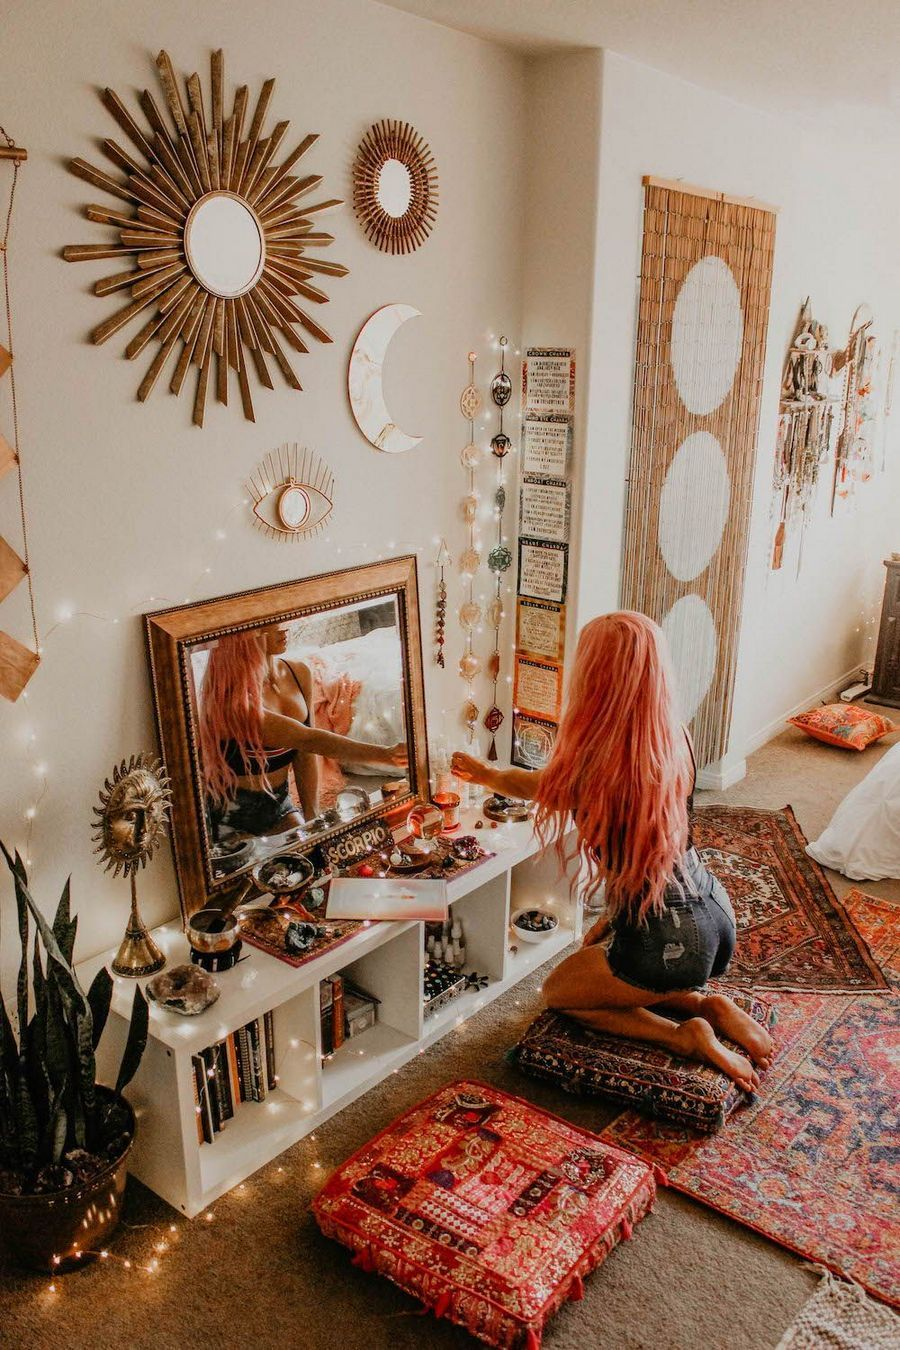 35+ Beautiful Hippie Bedrooms Ideas Features images